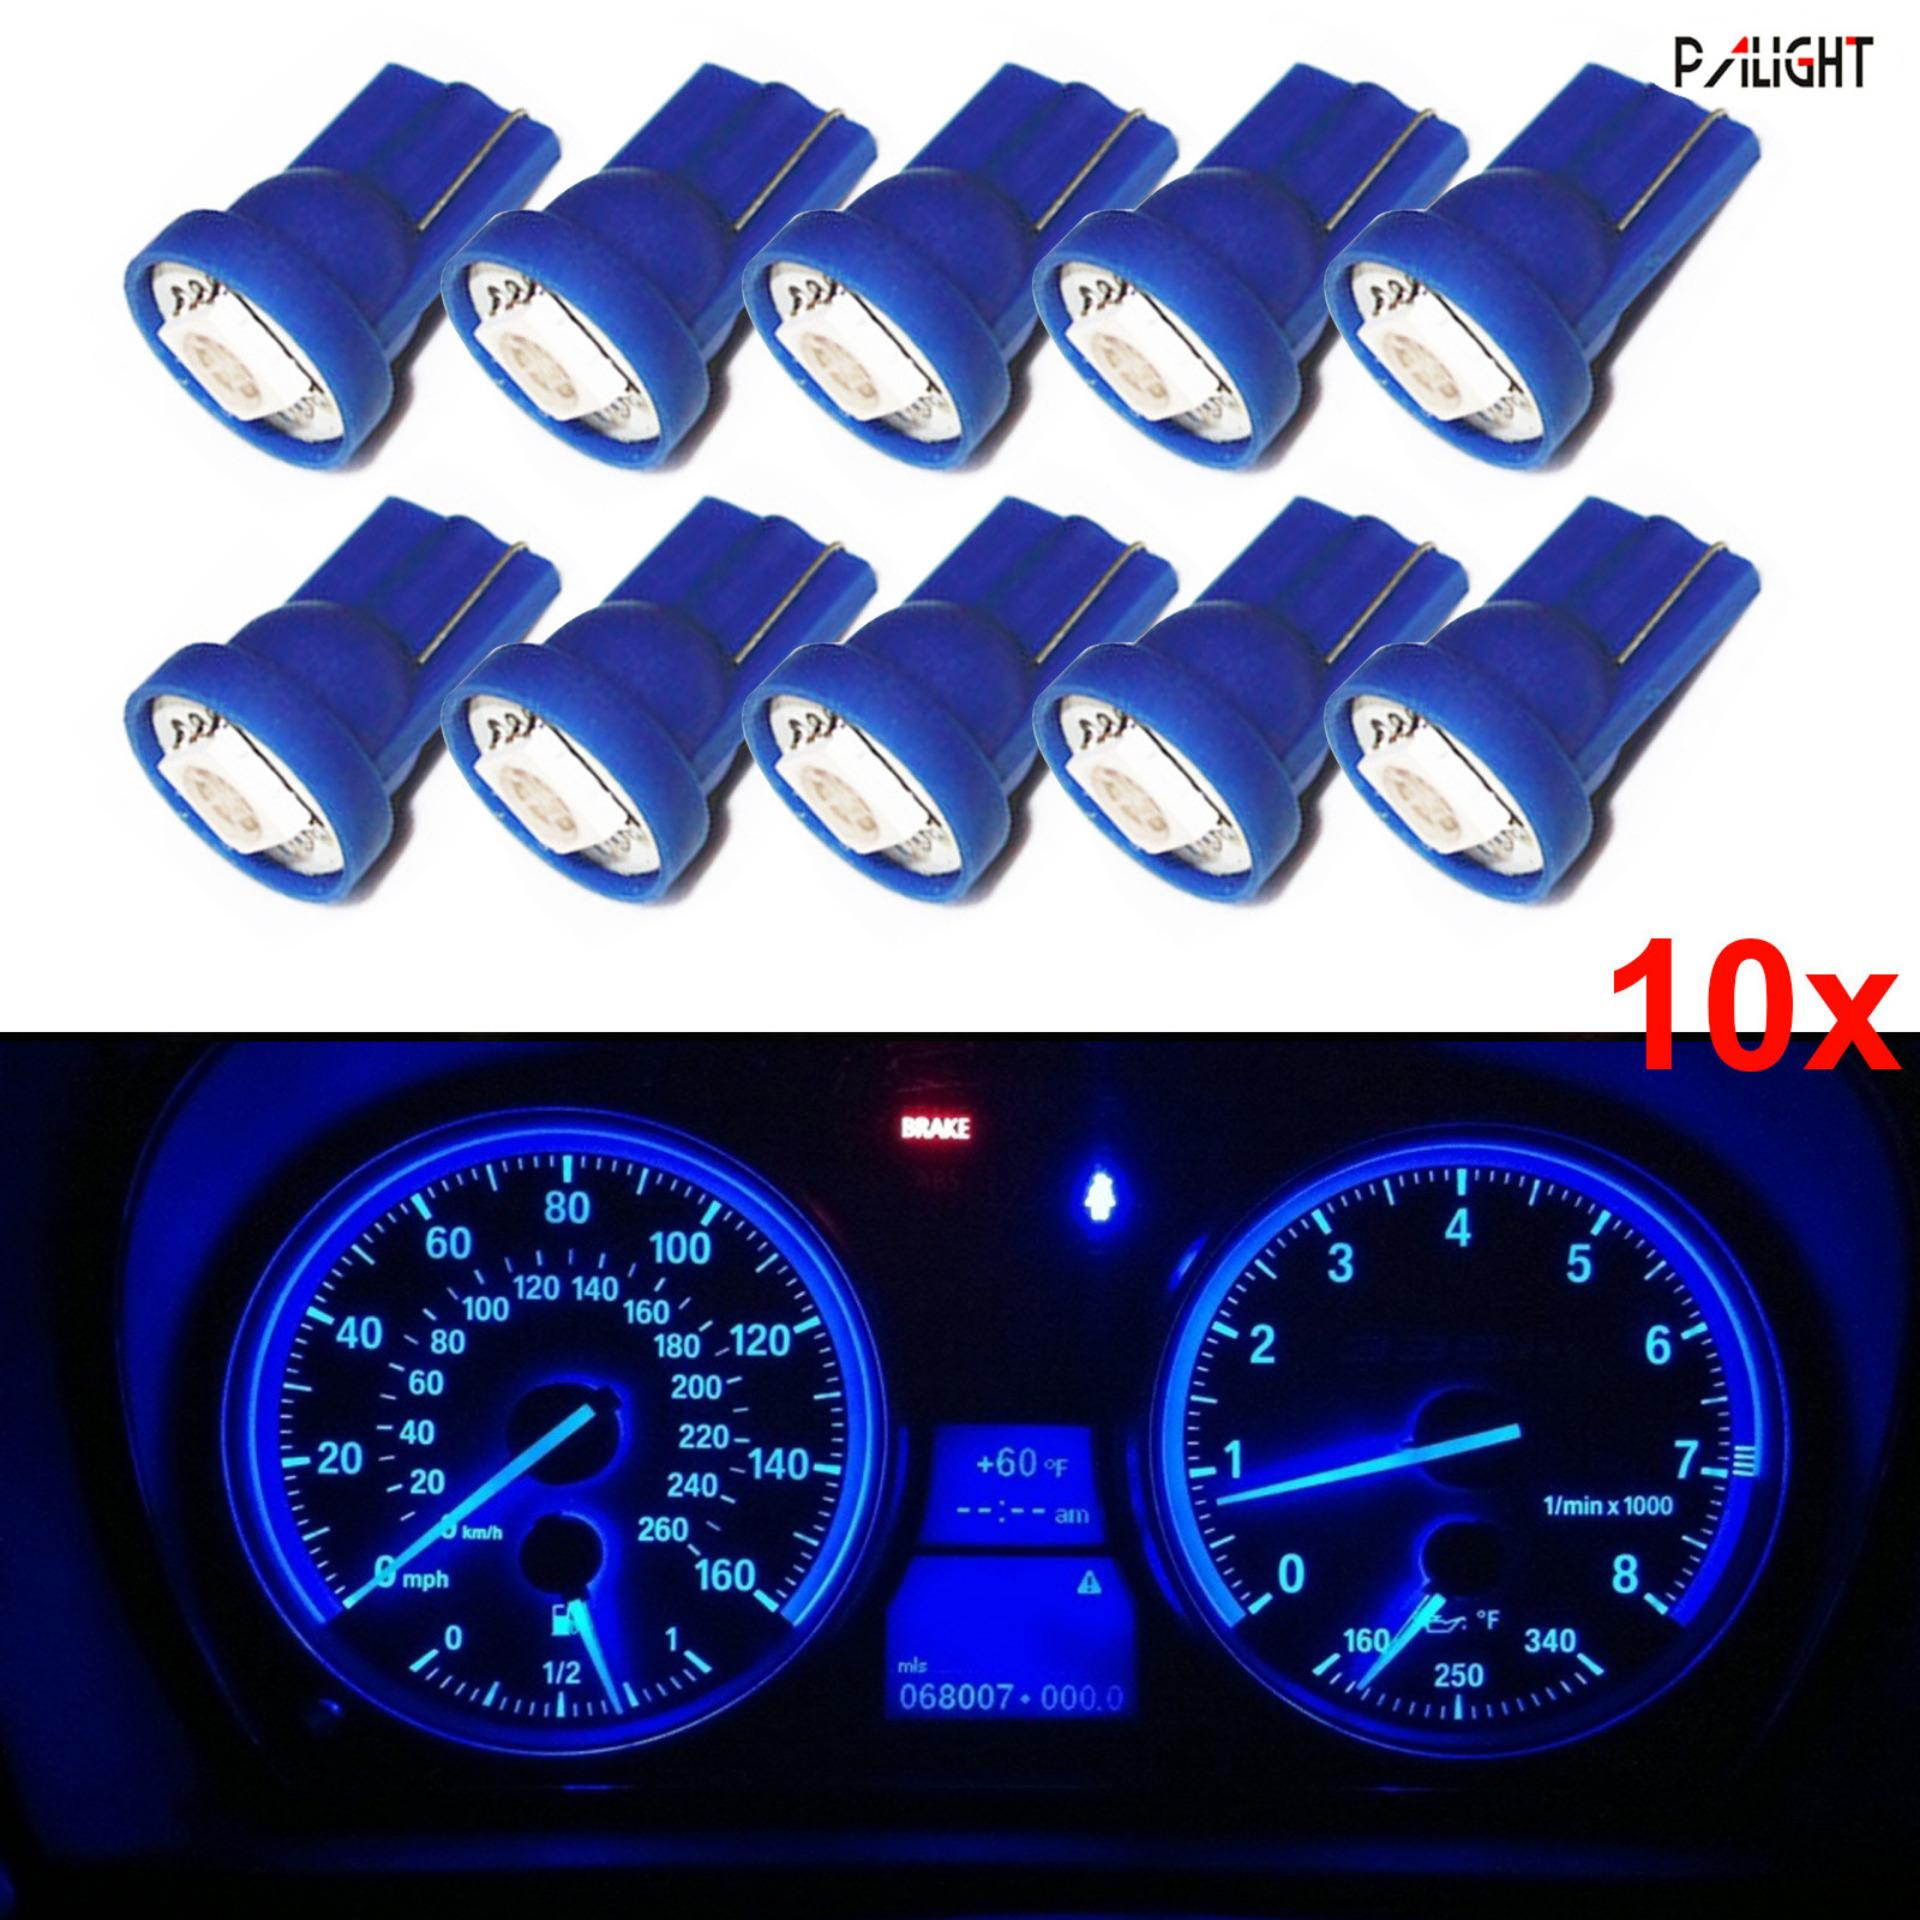 Car Parts Replacements For Sale Auto Spares Online Relay Fuel Pump Kuda Palight 10pcs T10 Wedge 5050 Smd Led Gauge Cluster Lights 147 152 Speedometer Lamps